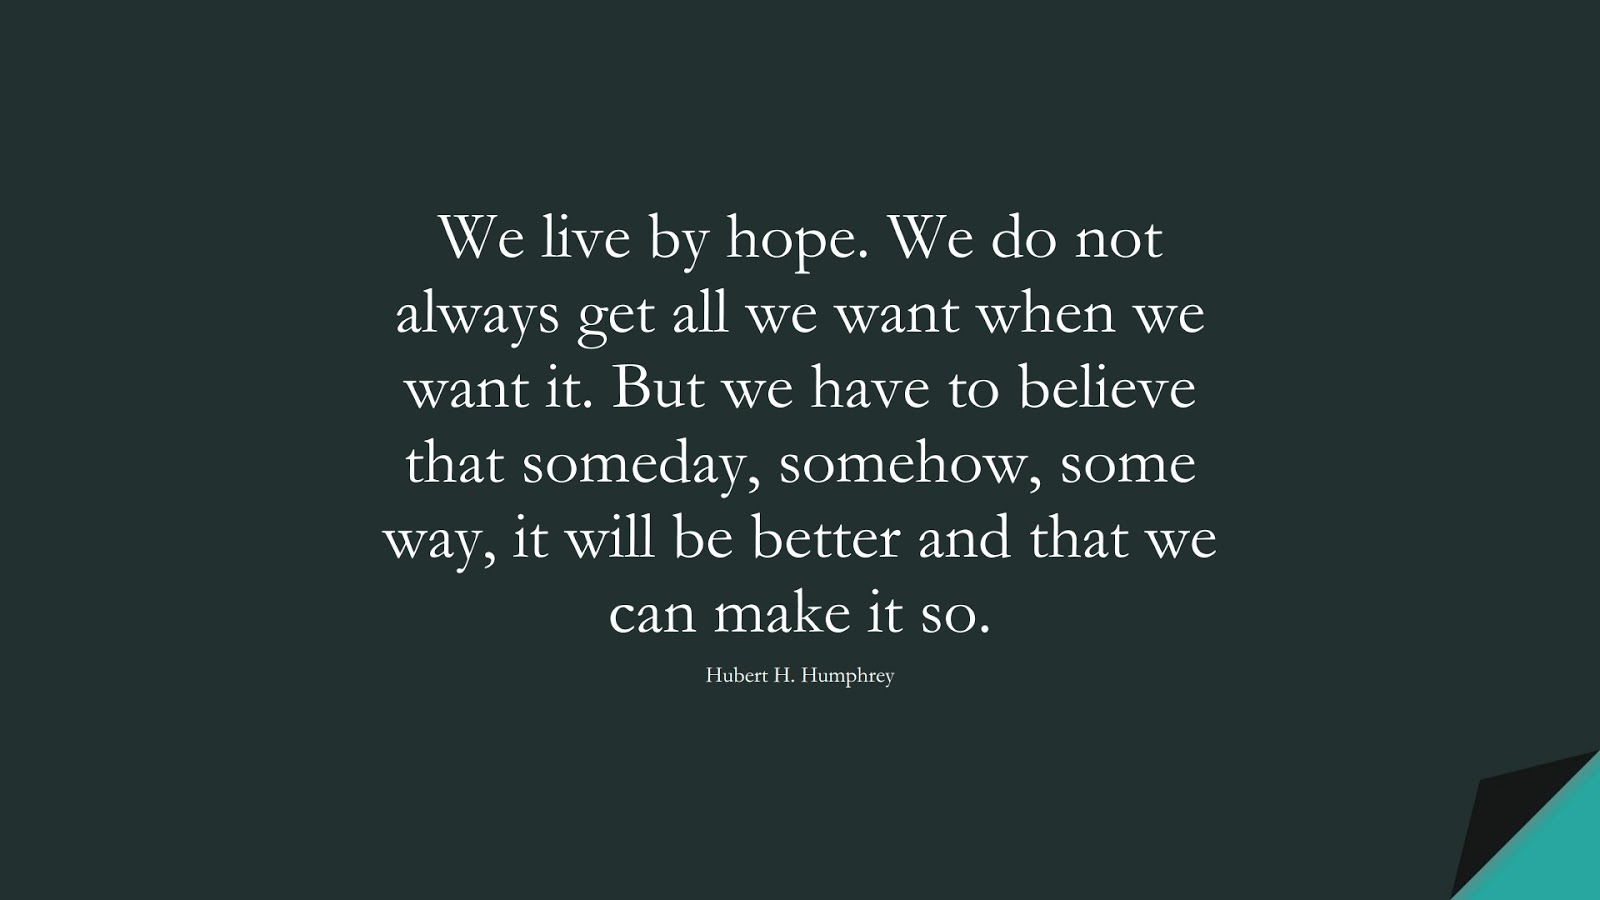 We live by hope. We do not always get all we want when we want it. But we have to believe that someday, somehow, some way, it will be better and that we can make it so. (Hubert H. Humphrey);  #HopeQuotes